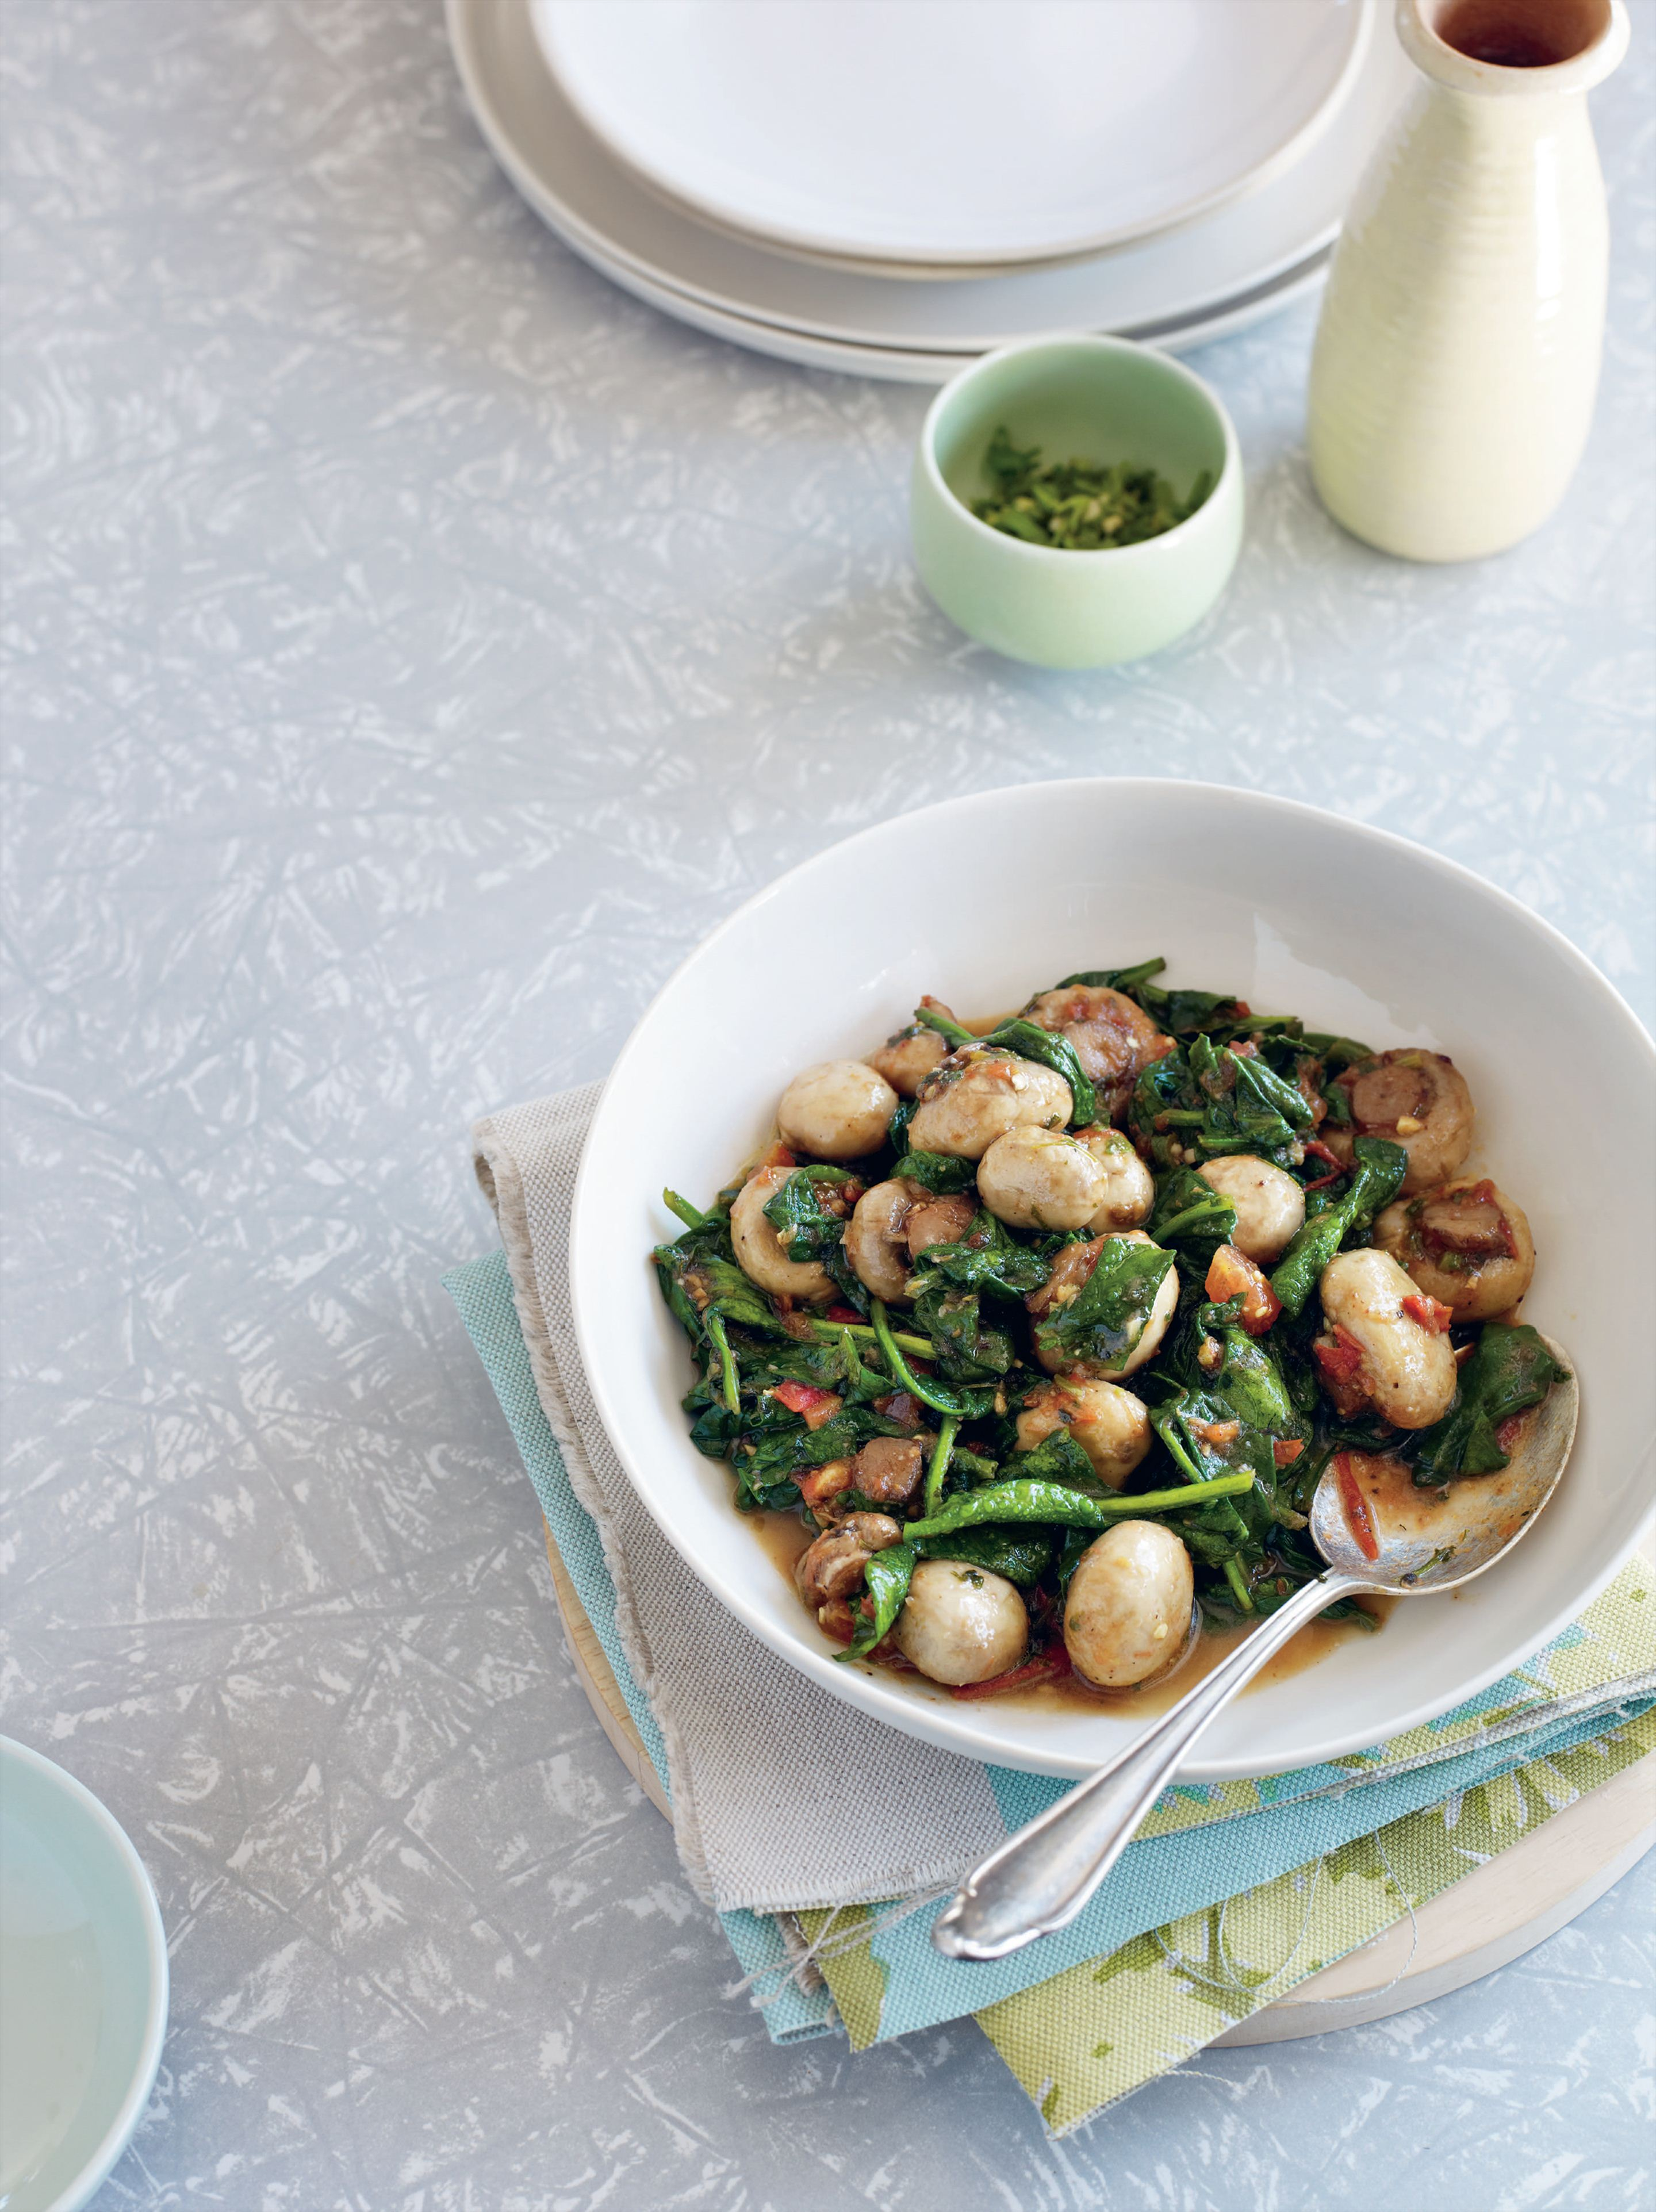 Karahi-style baby spinach and mushrooms